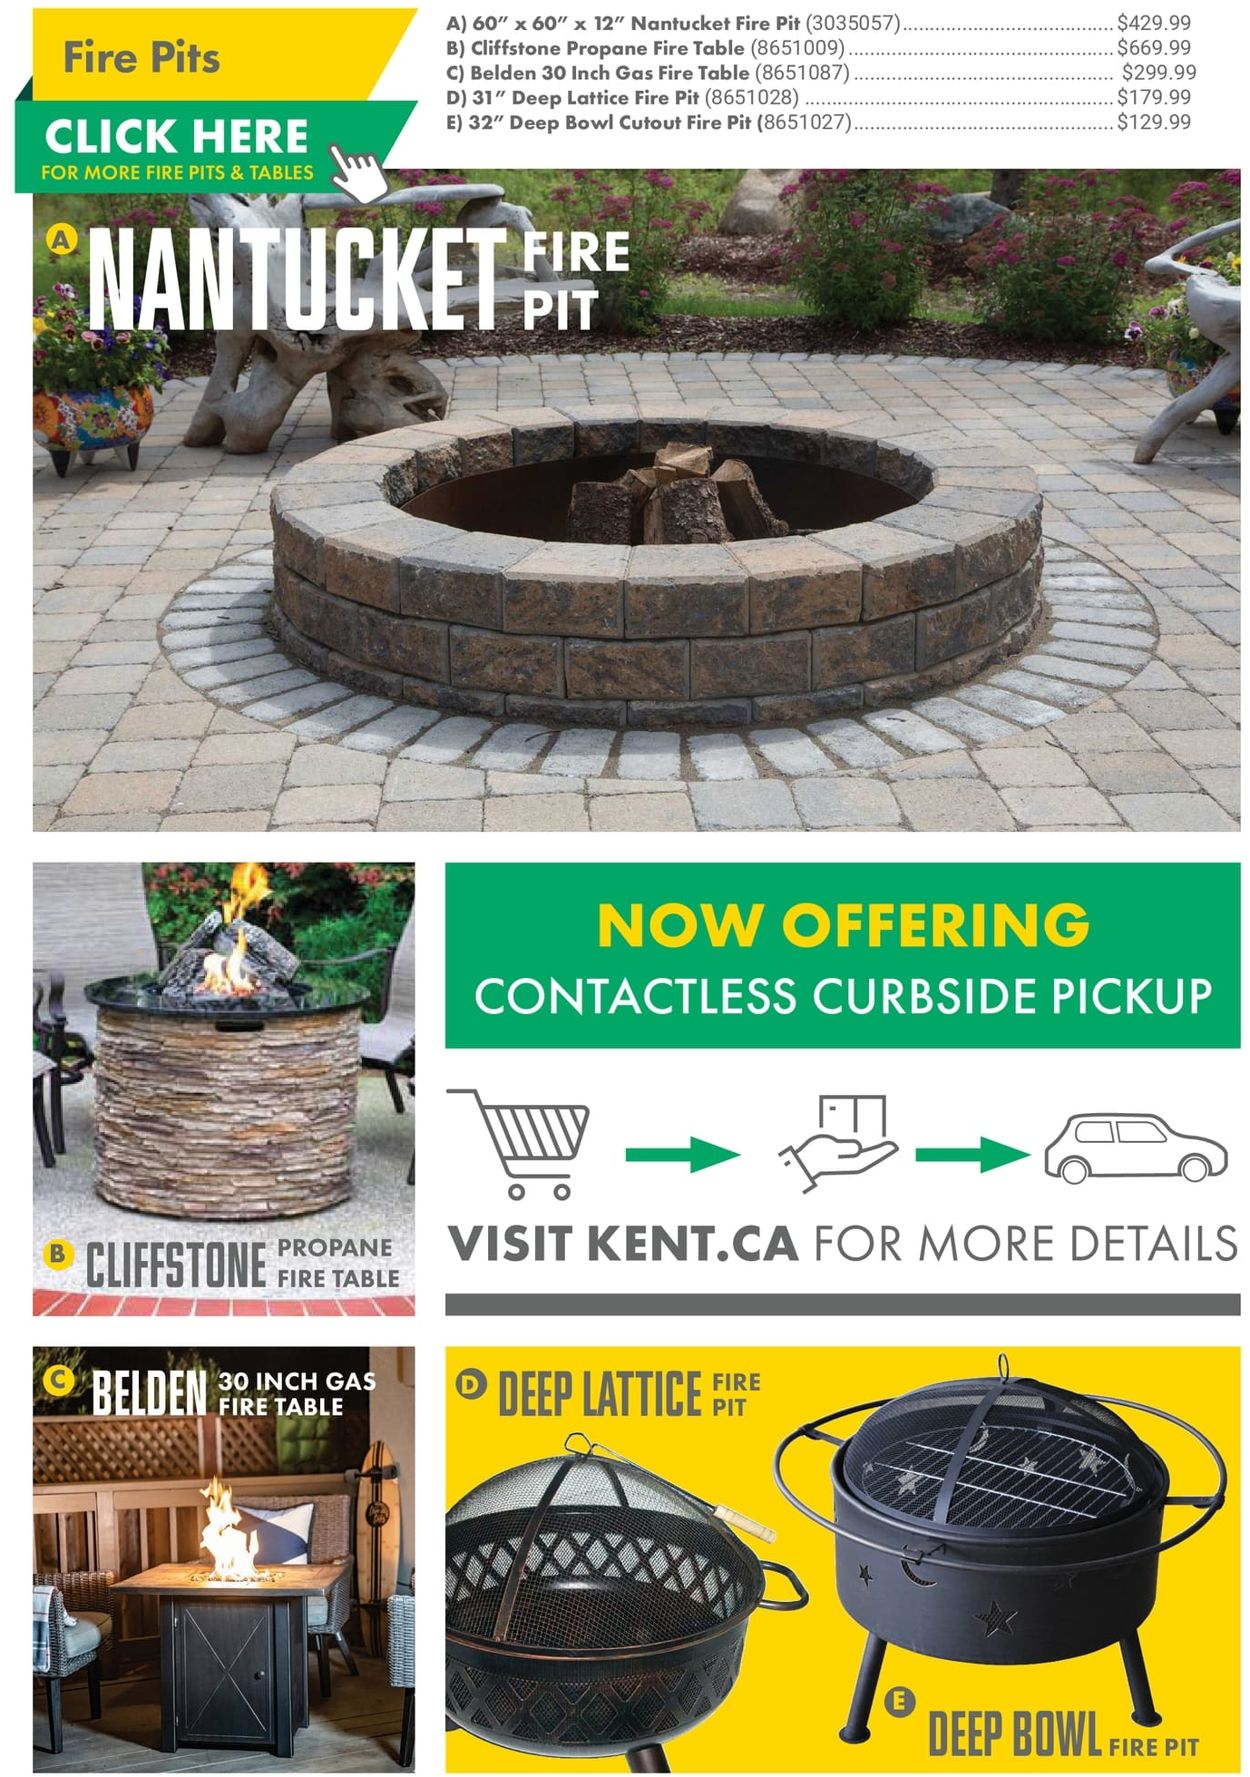 Kent Flyer - 04/16-04/29/2020 (Page 3)